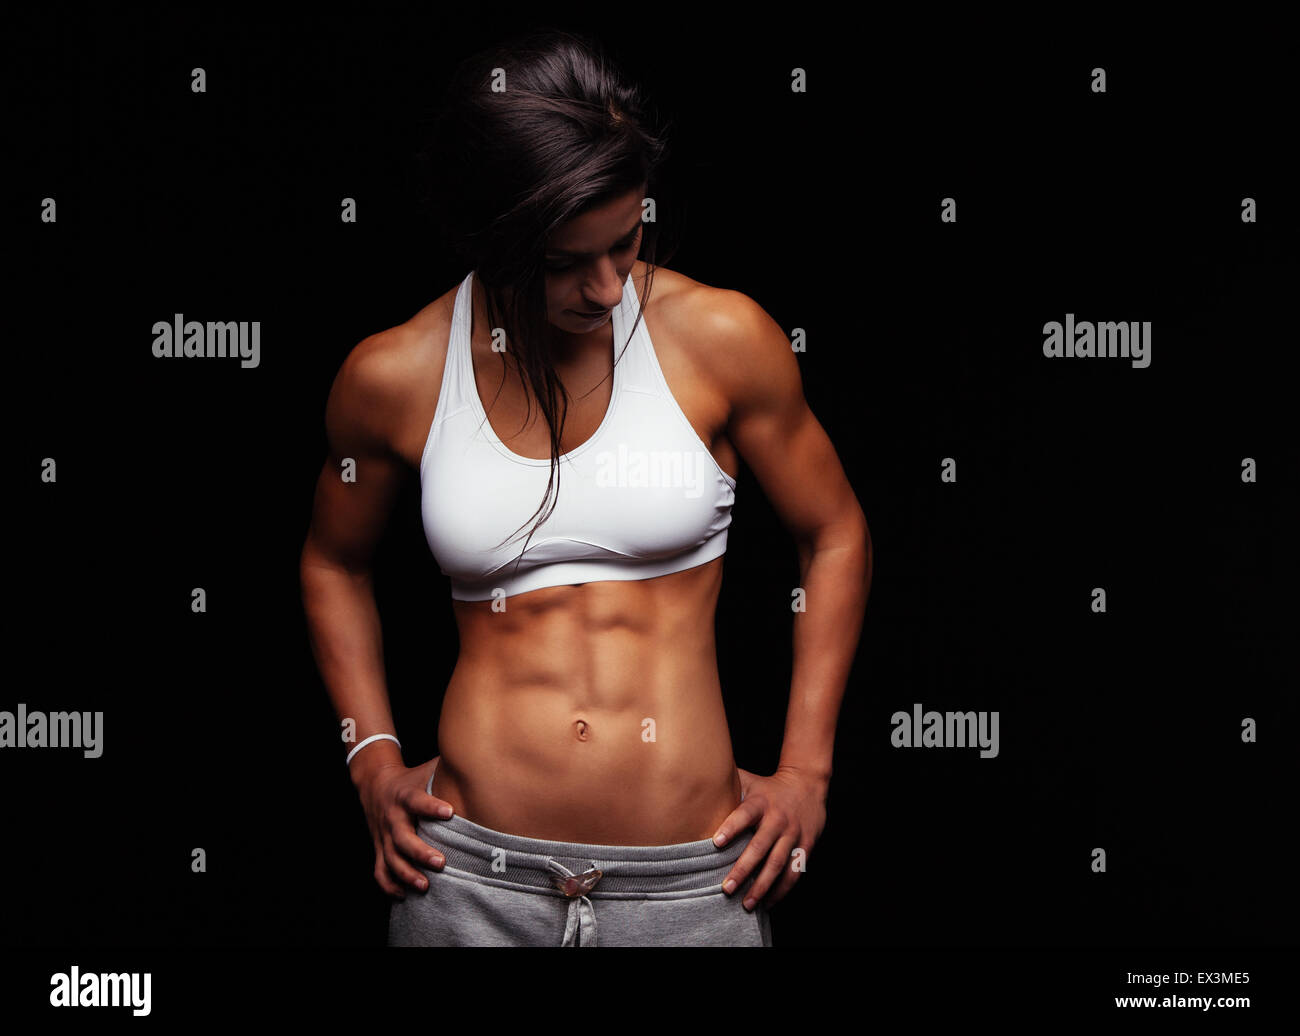 Fit young woman in sportswear looking down while standing with her hands on her hips. Muscular female model posing - Stock Image